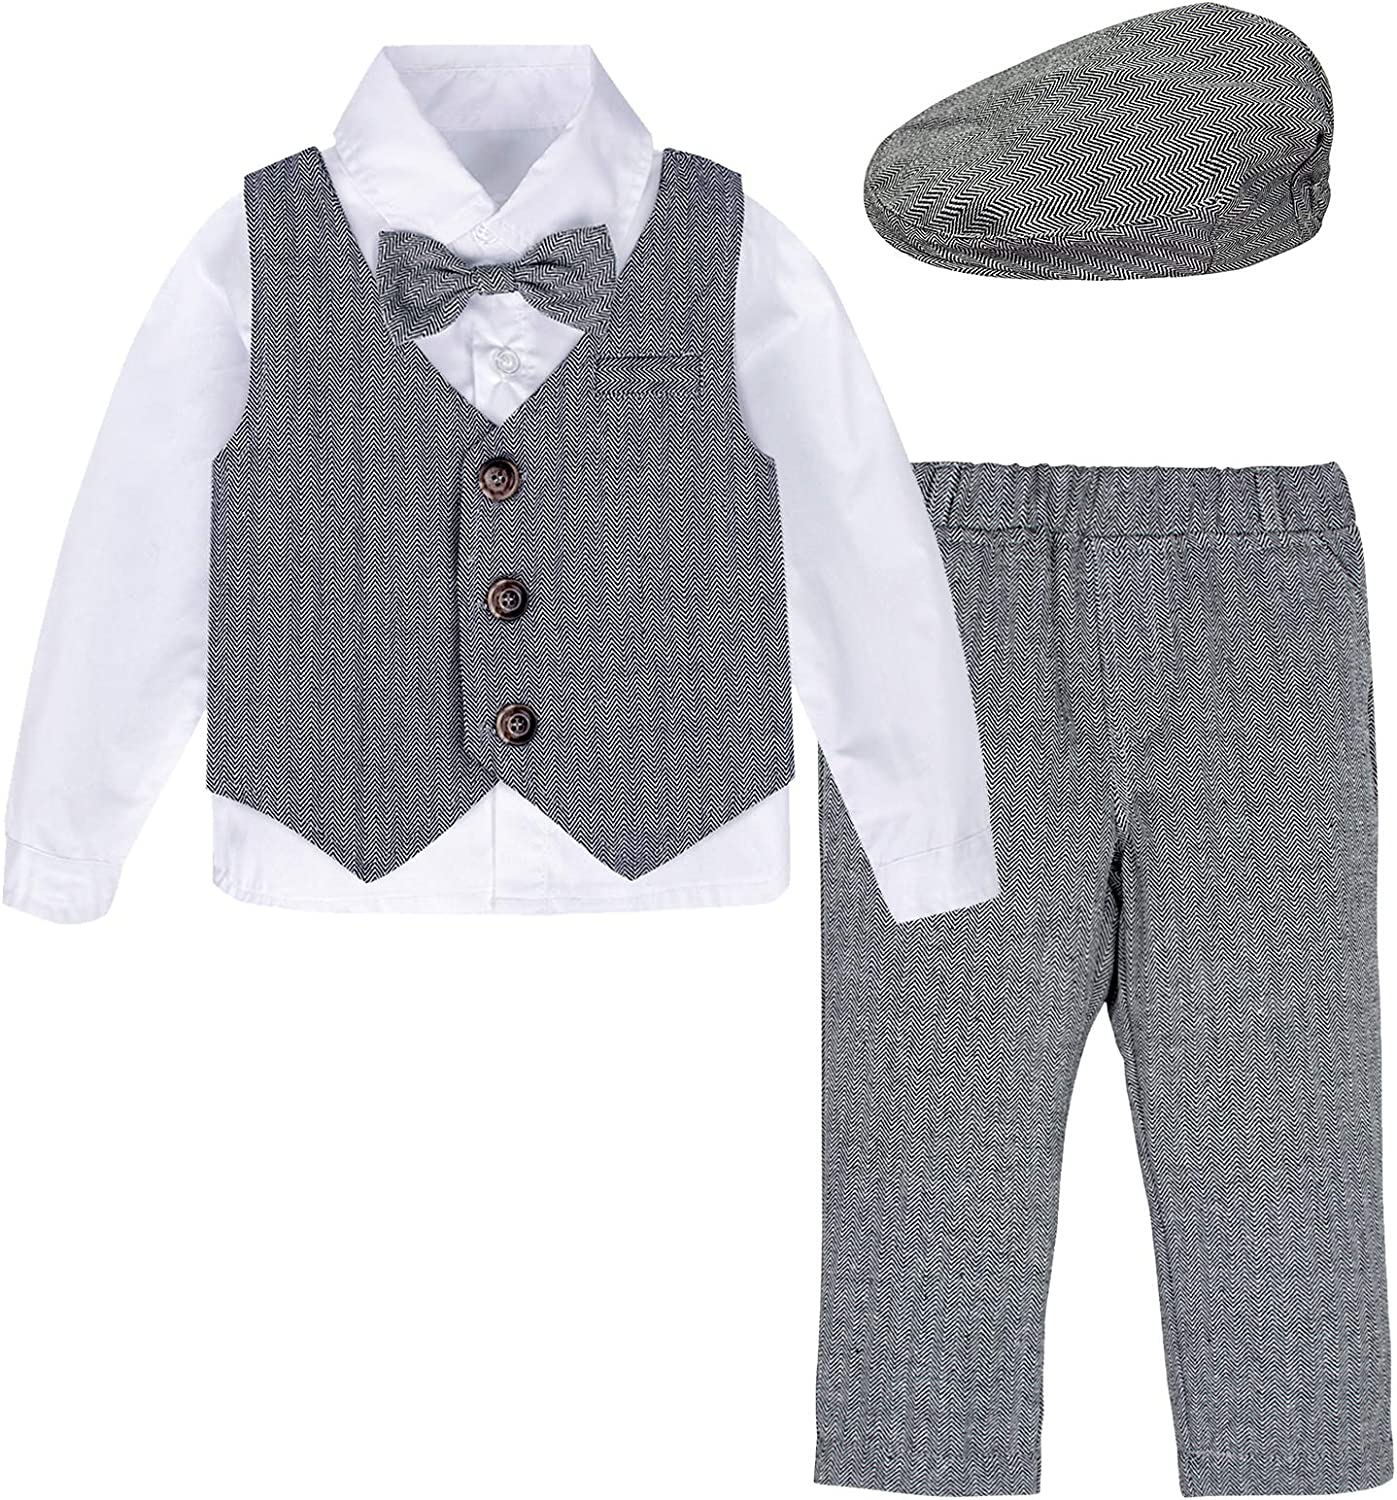 mintgreen Baby Boy Gentleman Suit Set Shirt with Bowtie+Waistcoat+Pants+Berets 4pcs Outfits Size:1-4 Years